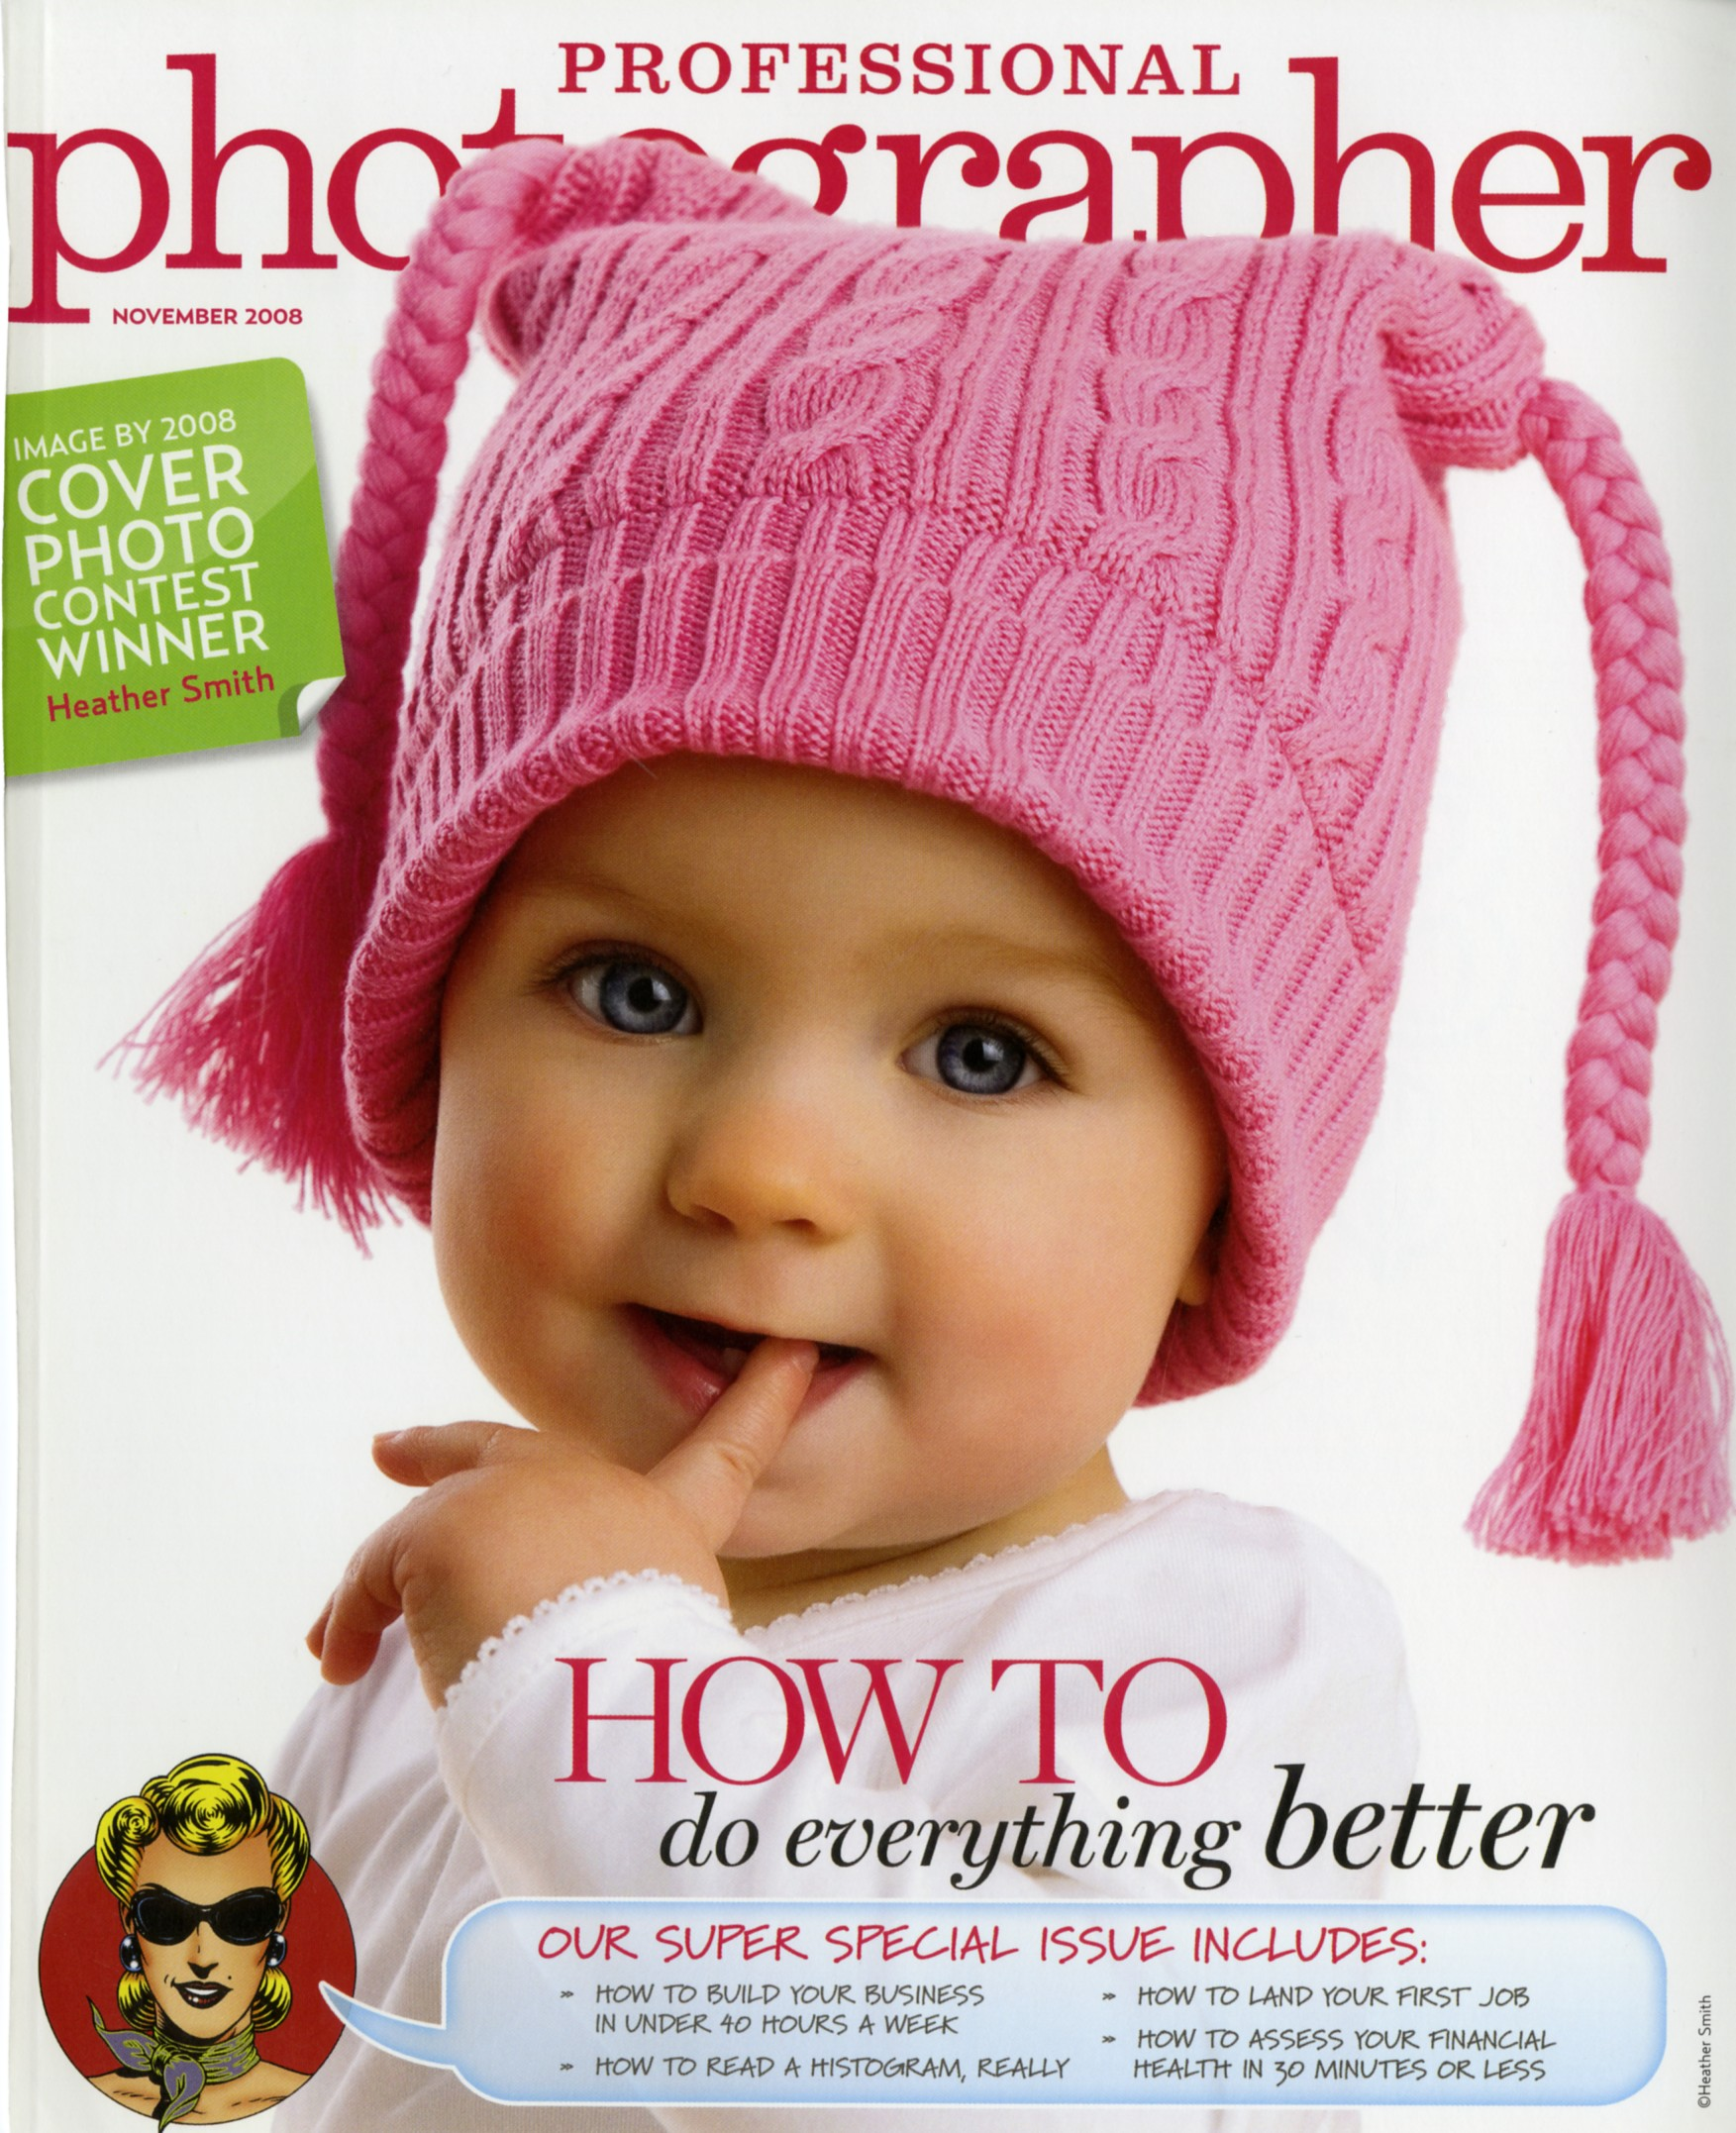 little baby girl on the cover with a pink beanie